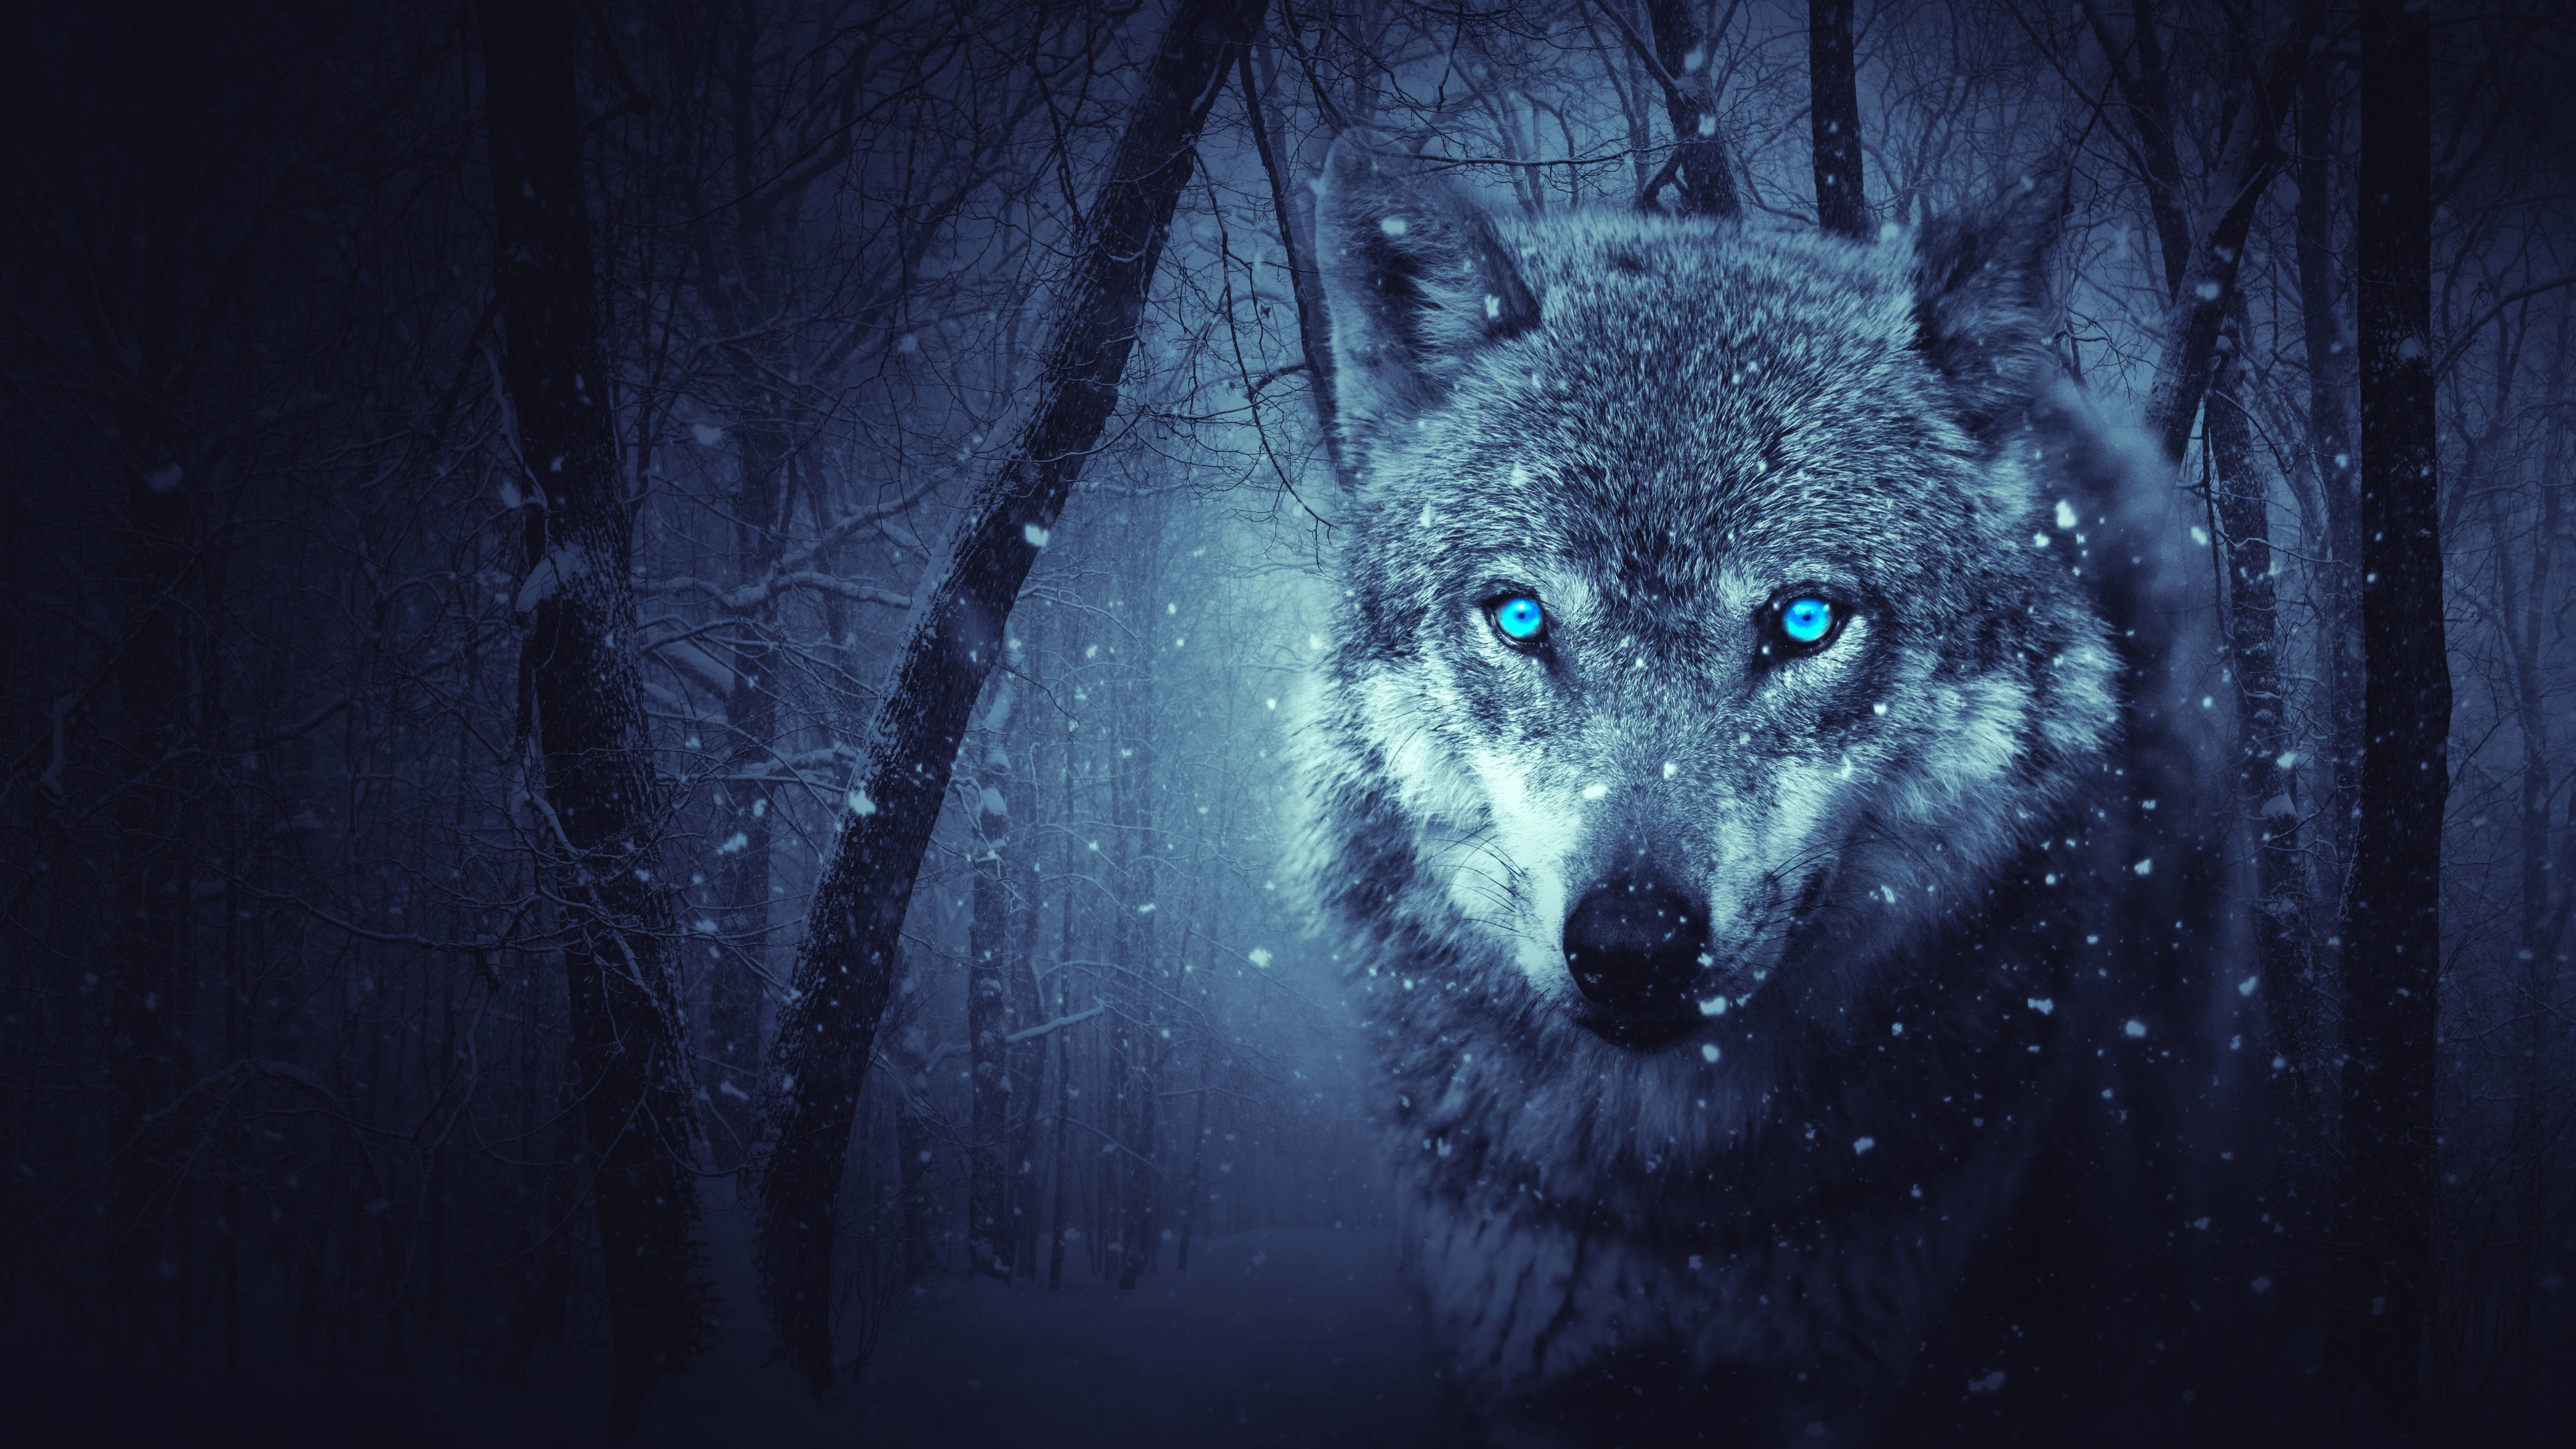 fantasy wolf 4k 1540749148 - Fantasy Wolf 4k - wolf wallpapers, hd-wallpapers, fantasy wallpapers, digital art wallpapers, artist wallpapers, 5k wallpapers